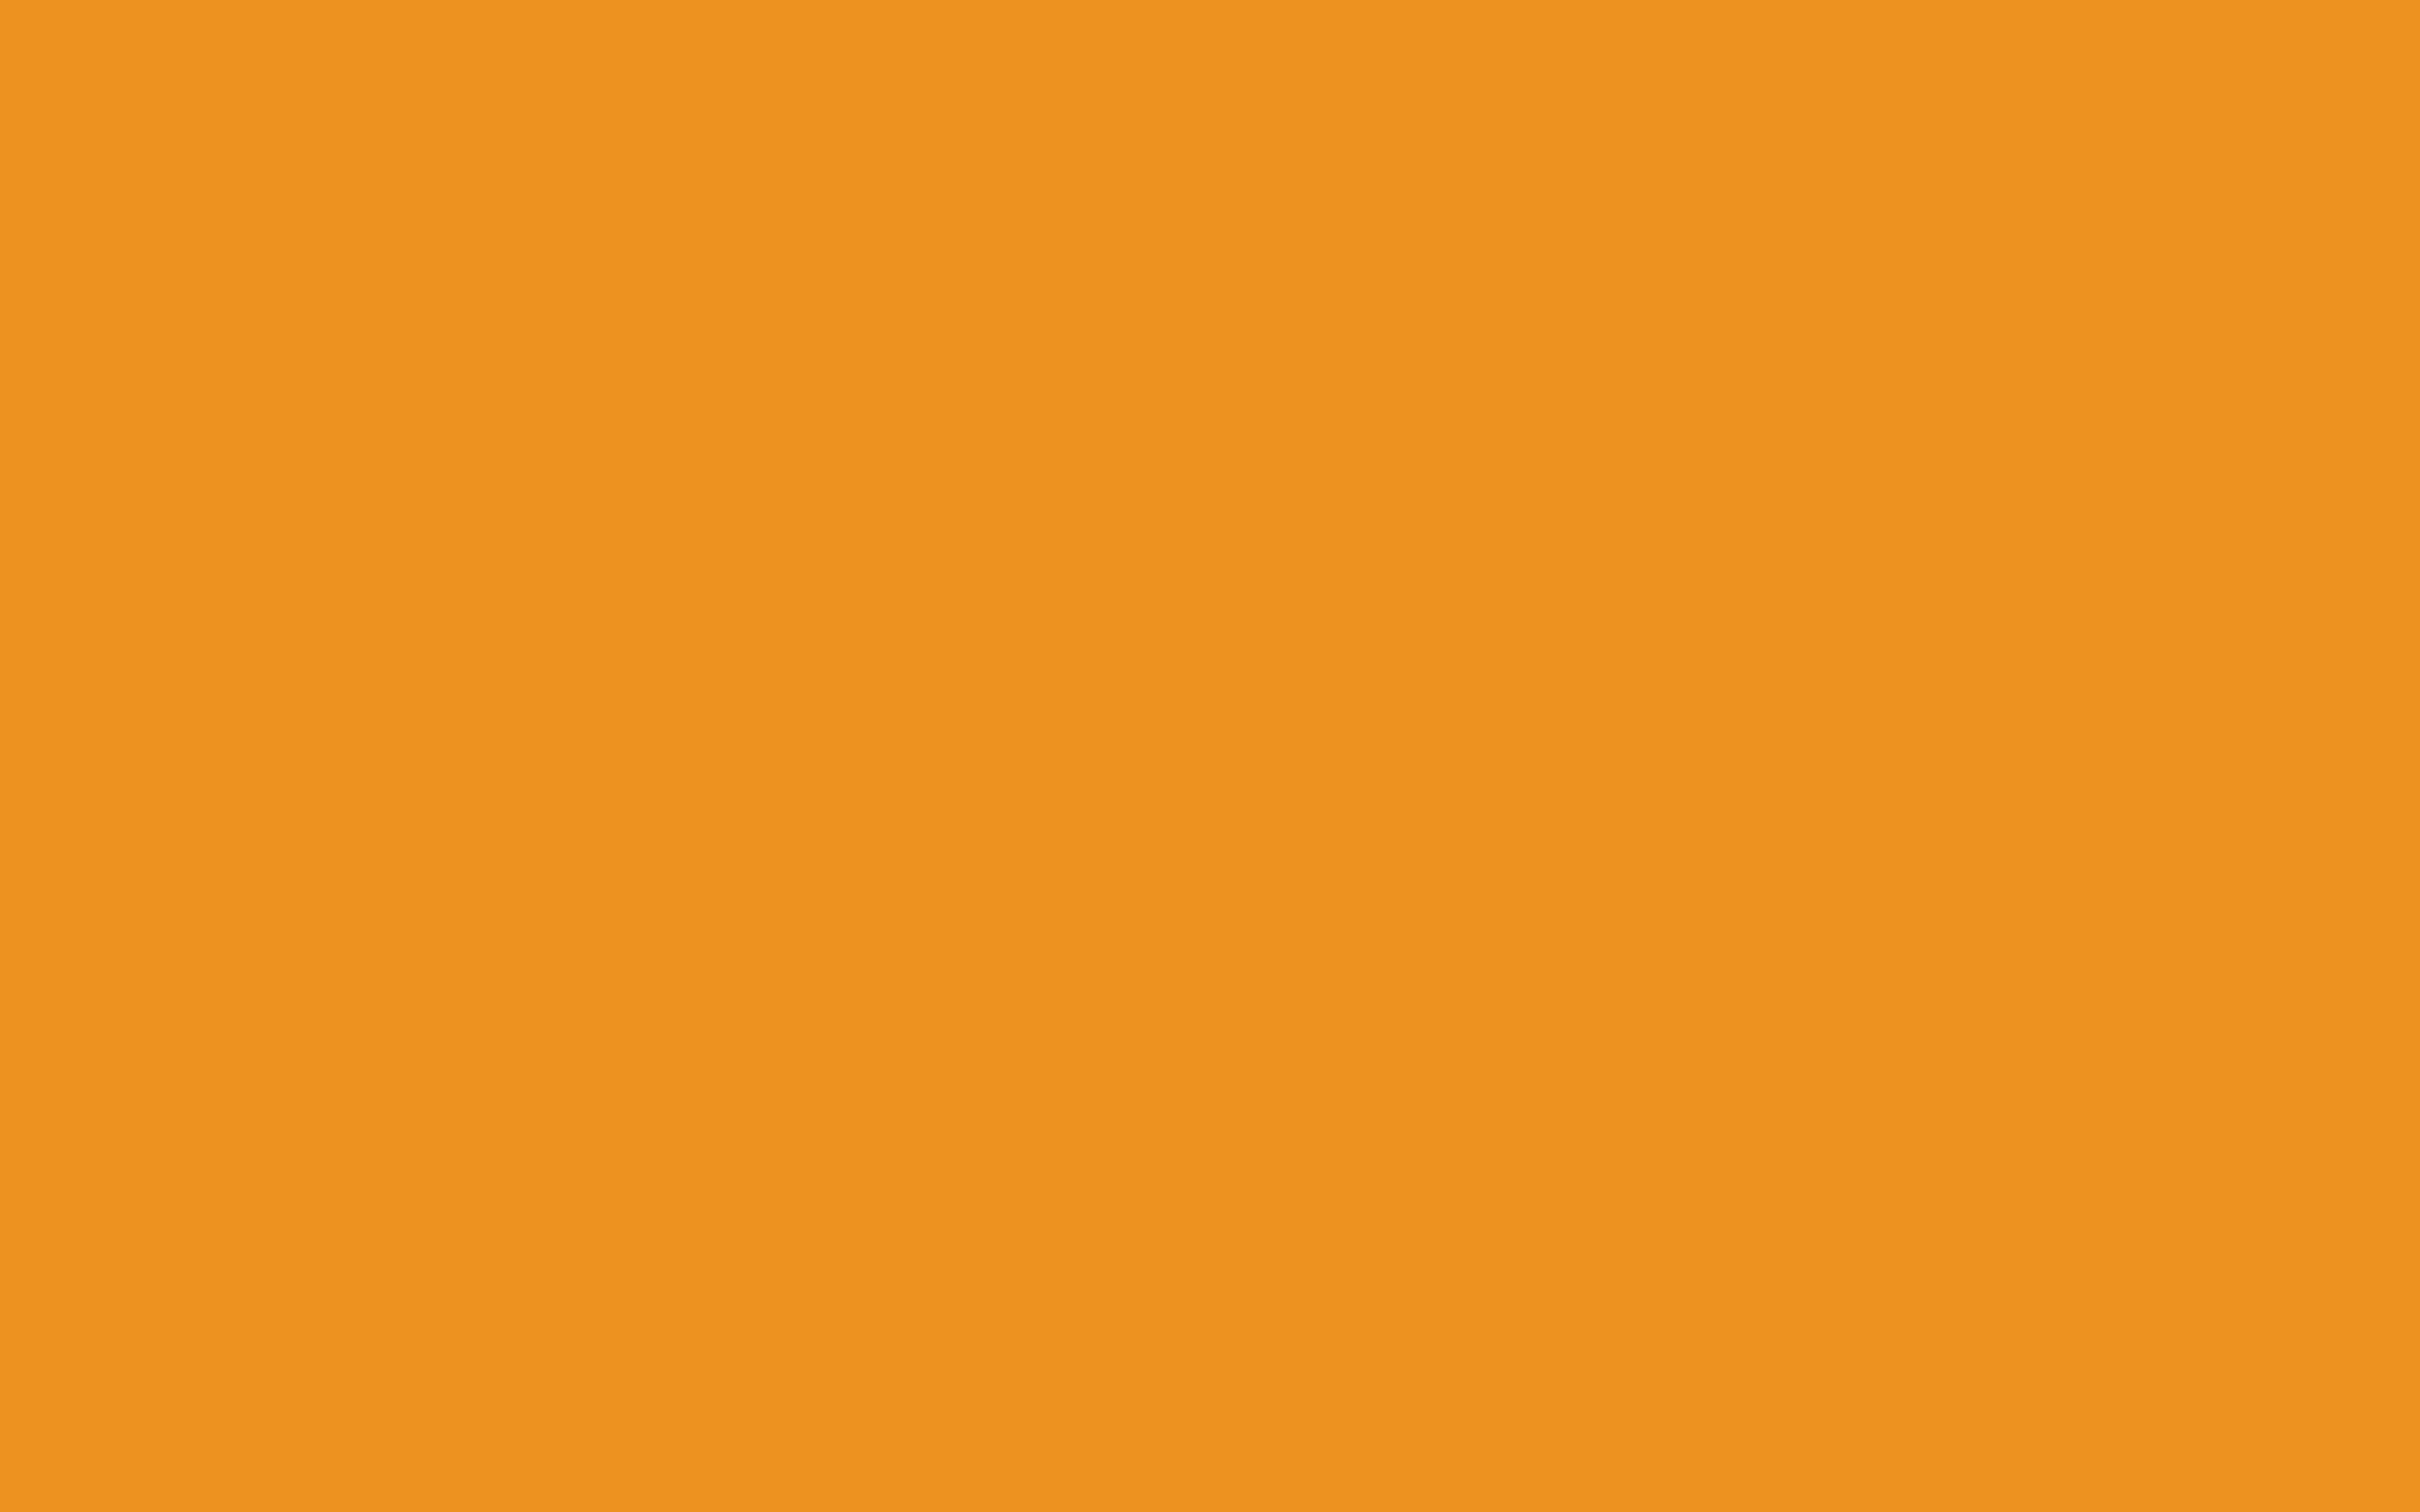 2560x1600 Carrot Orange Solid Color Background